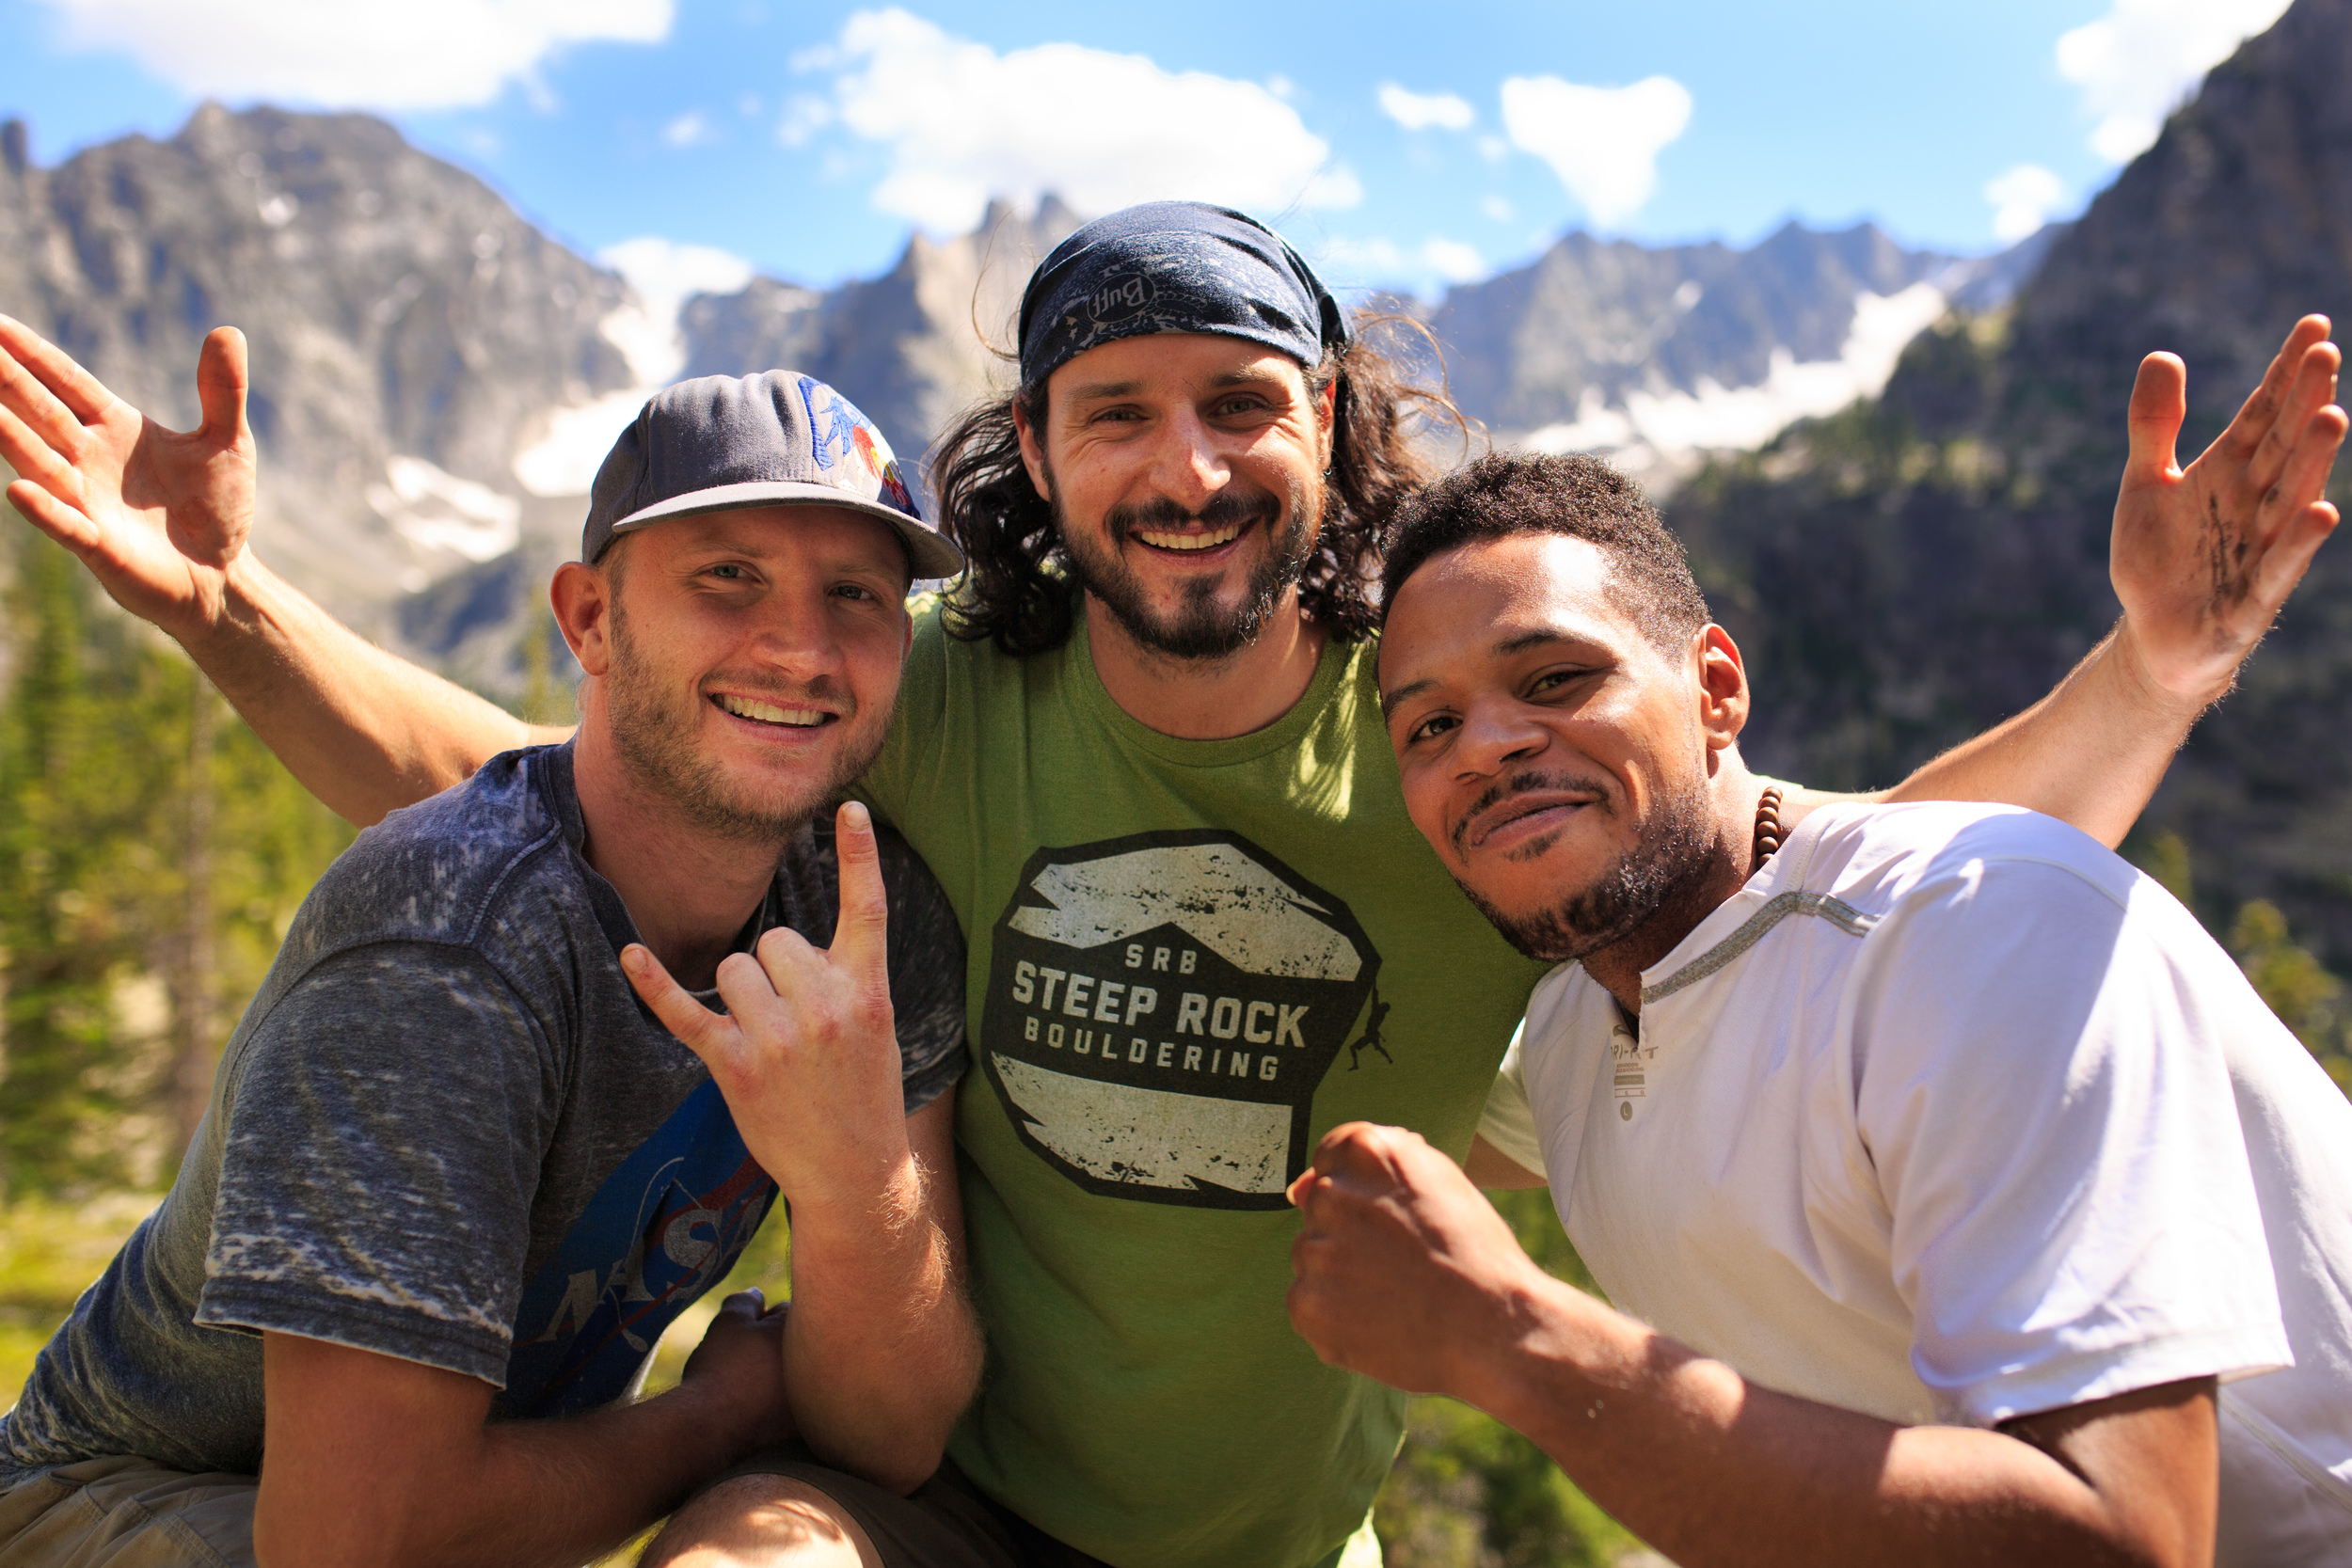 Jesse Spiegel, Vítek Linhart, and Anthony DeJesus of  Rewilding  on a backpacking trip in Colorado's Indian Peaks Wilderness Area.   Download  a High Resolution JPEG  Image (5.86 MB)